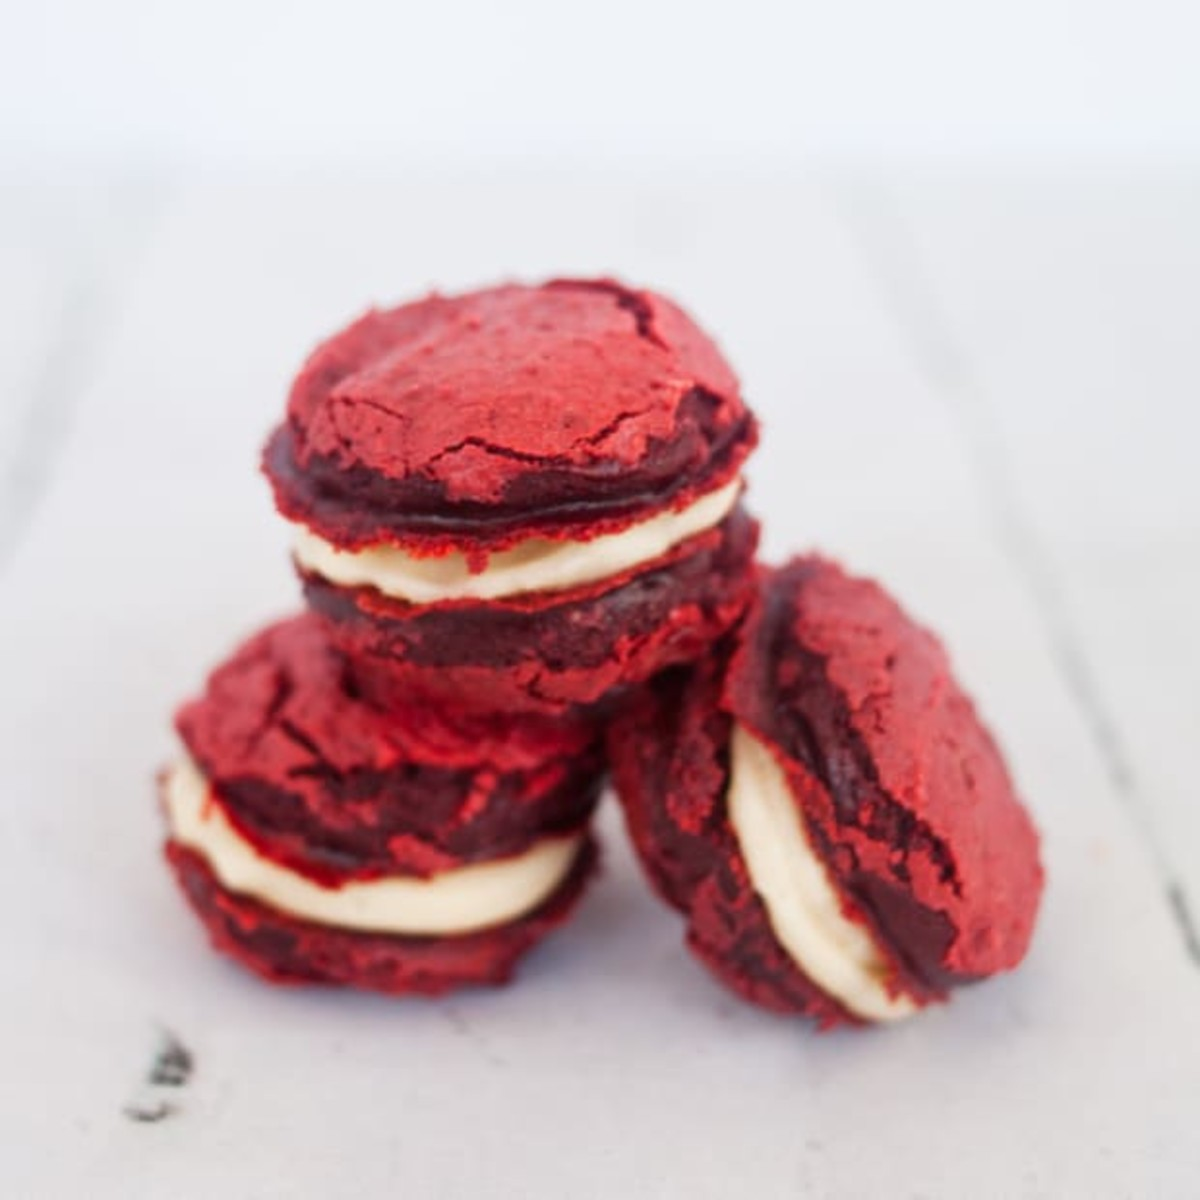 Red Velvet Cake Mix Whoopie Pie Cookies with Cream Cheese Filling